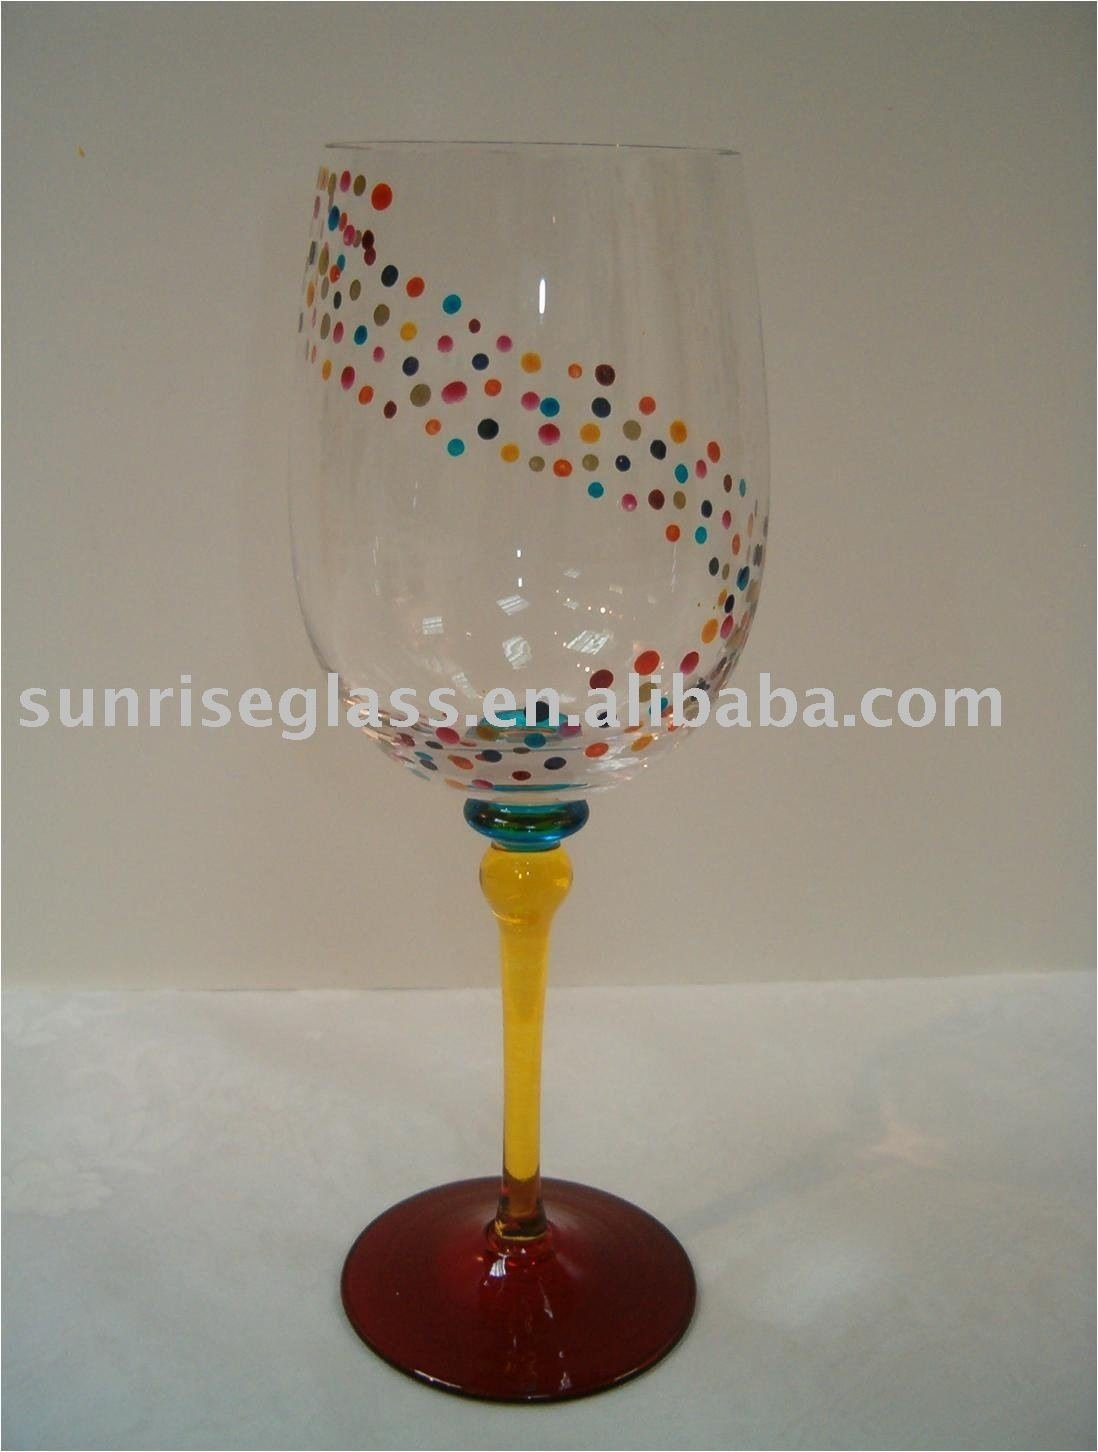 10 Cute Ideas For Painting Wine Glasses ideas for creative painting of wine glassese paint with me 2021